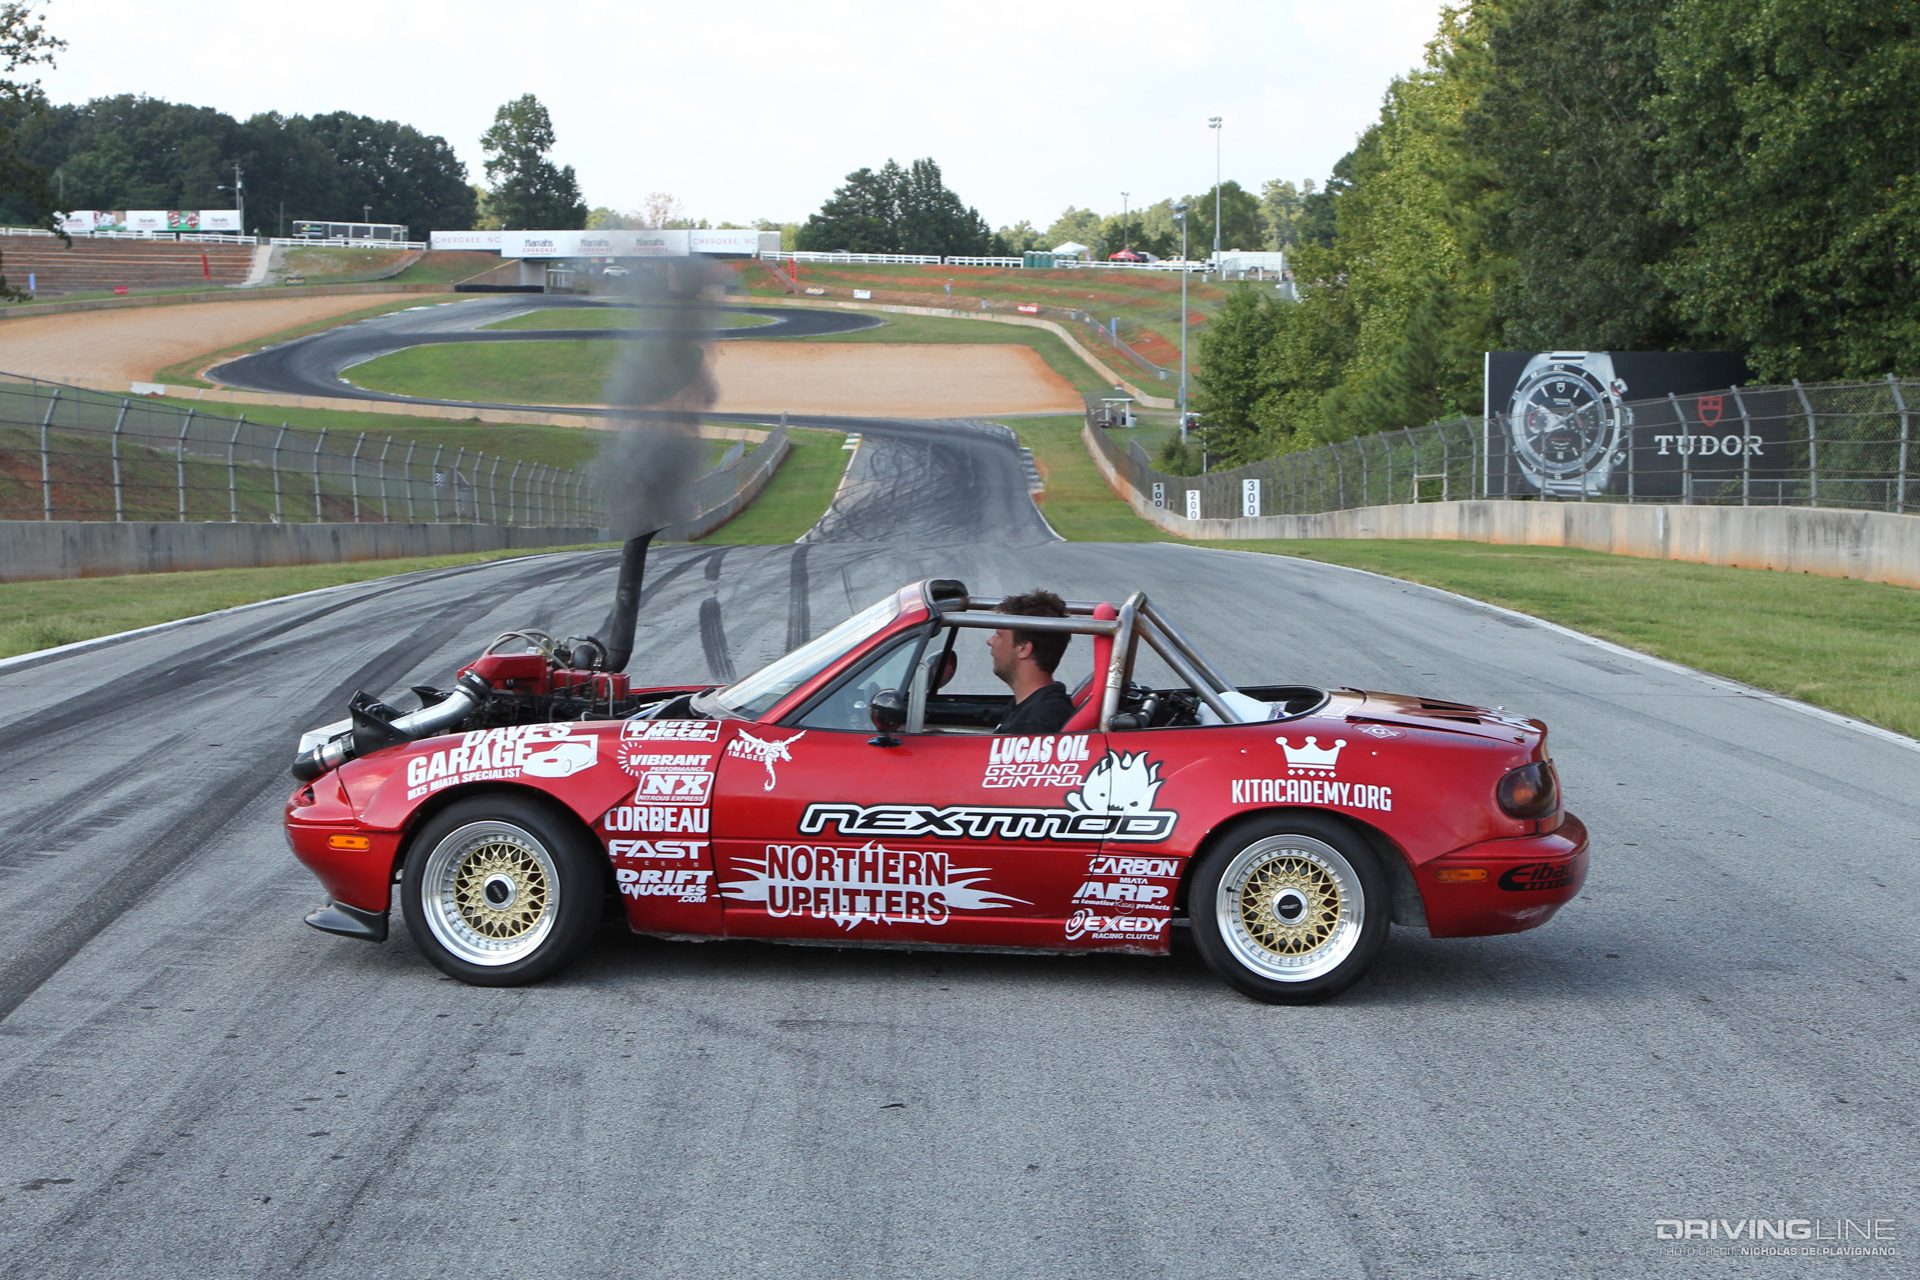 ZOOM-ZOOM, Here It Cummins! The Diesel Drift Mazda Miata | DrivingLine